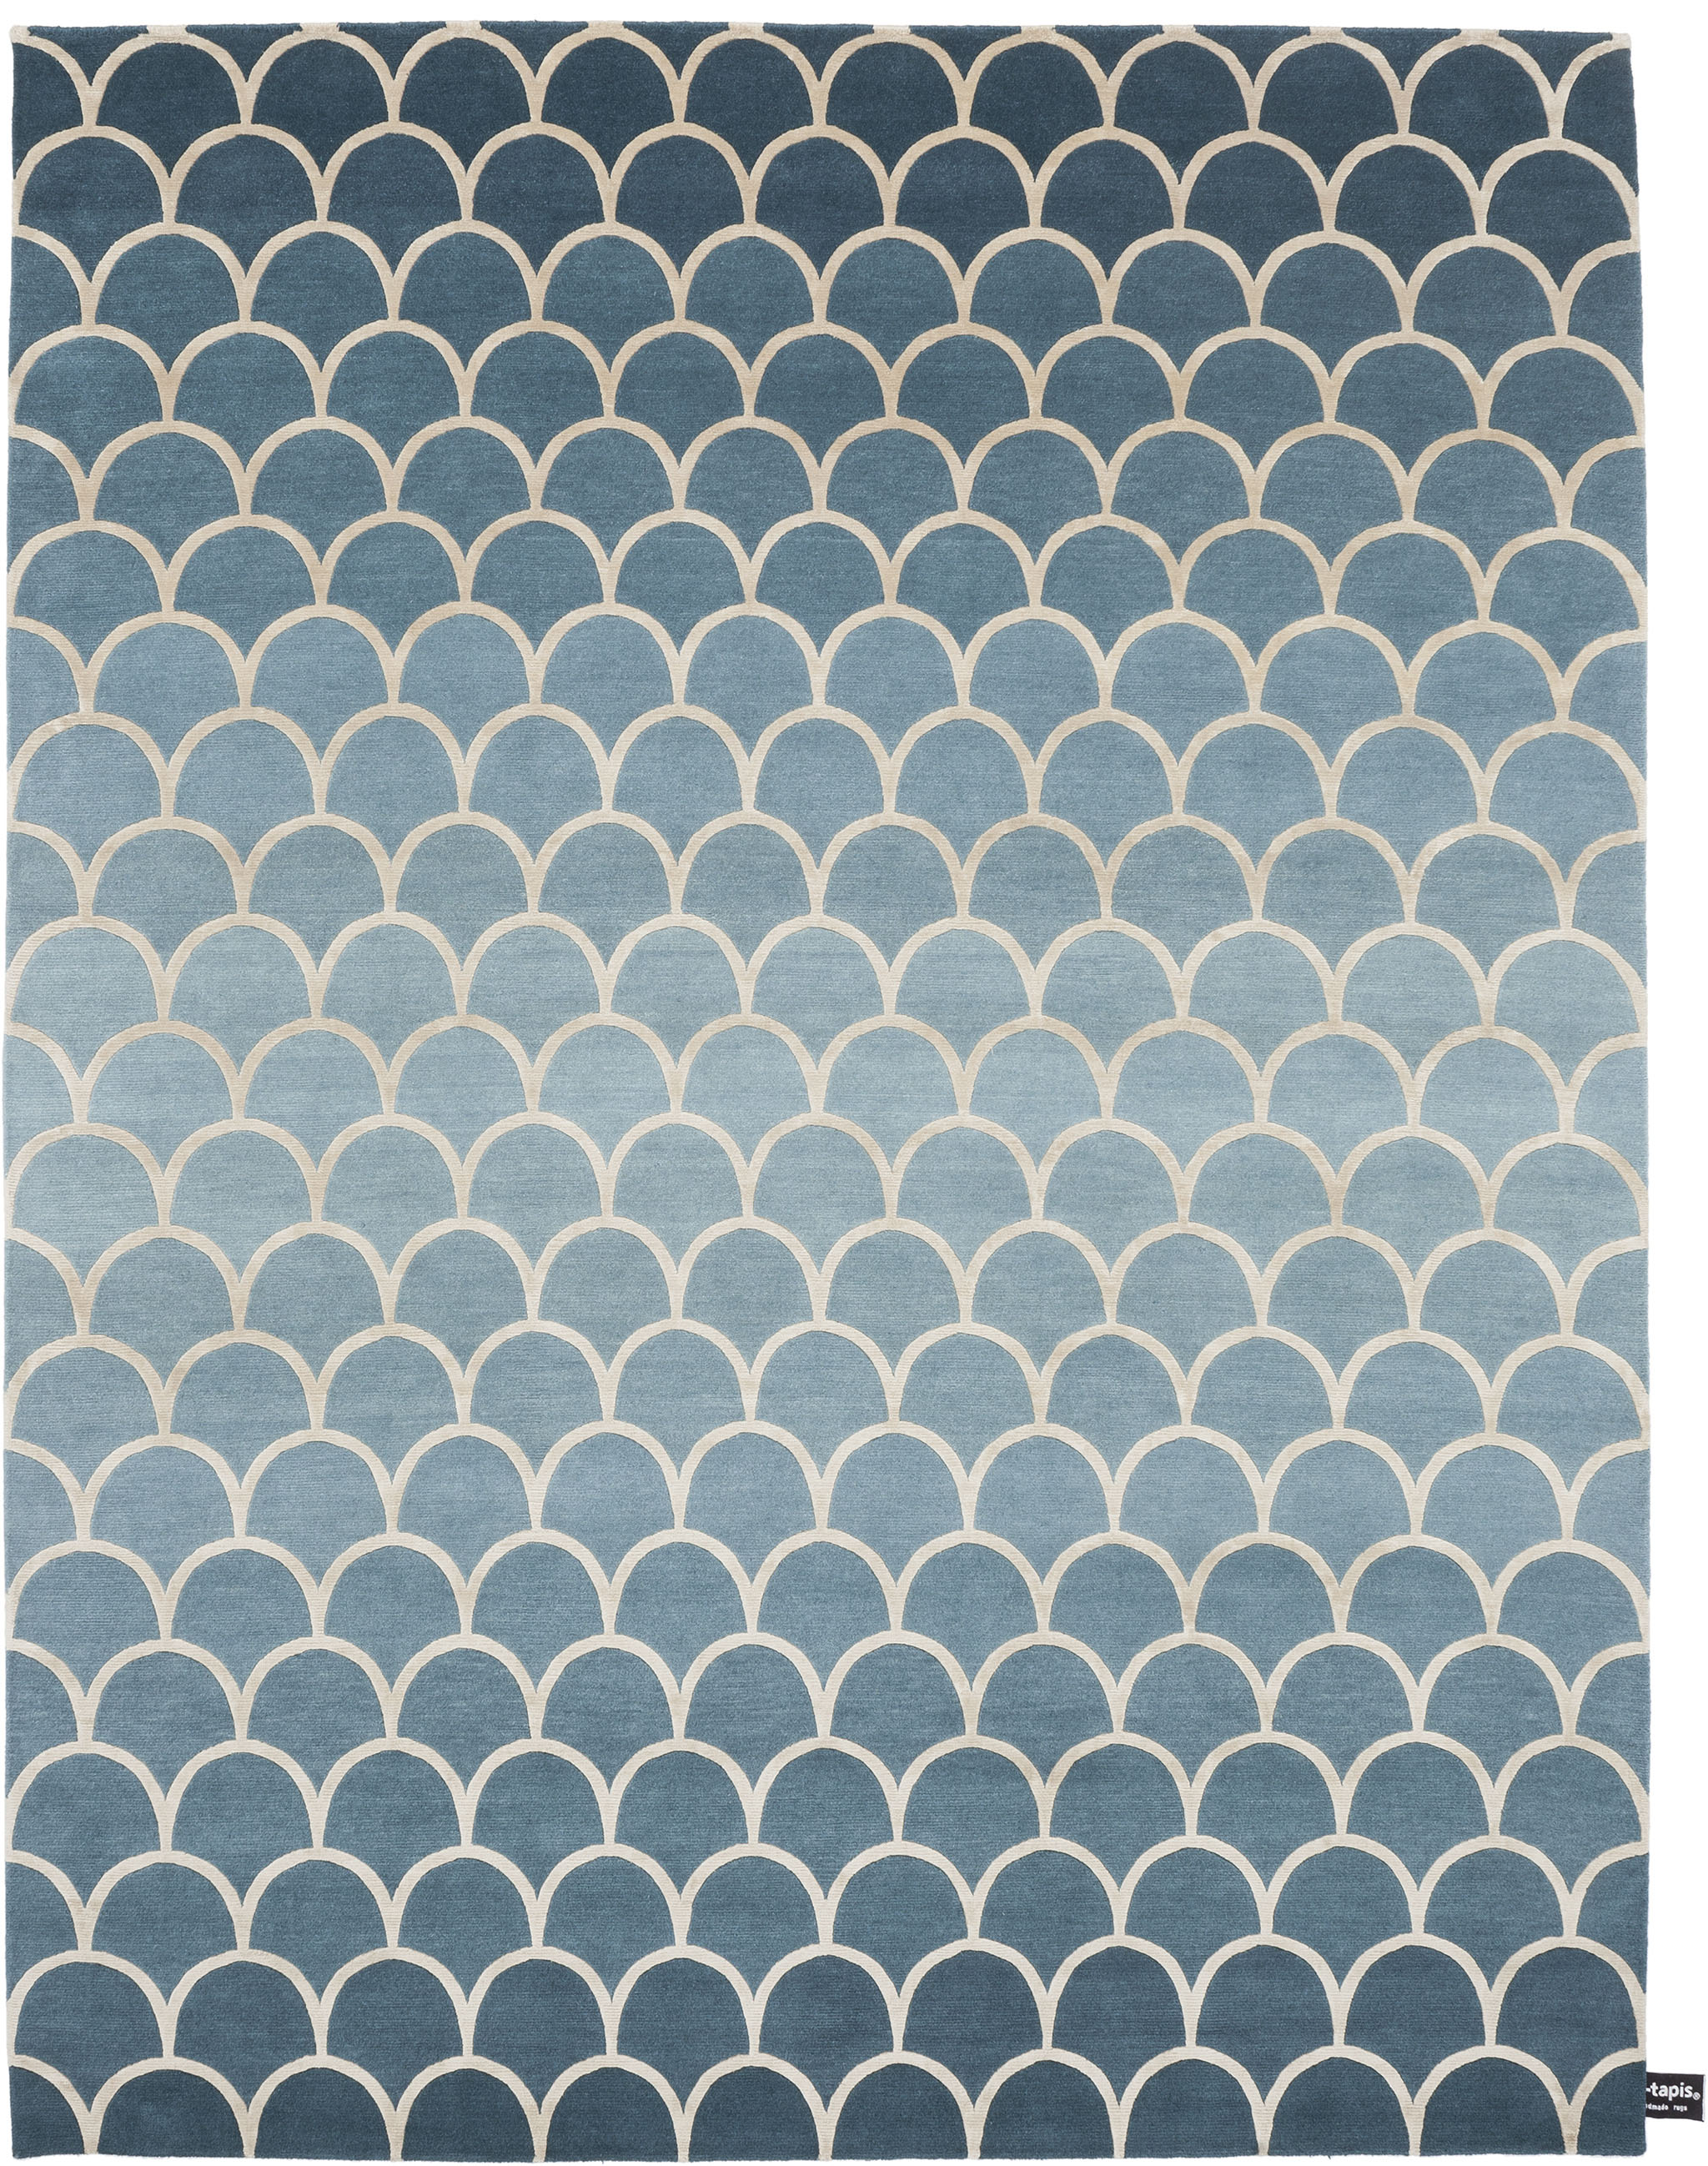 'Ecailles Degradé 2.0' from the Contemporary Collection by cc-tapis. | Image courtesy of cc-tapis.